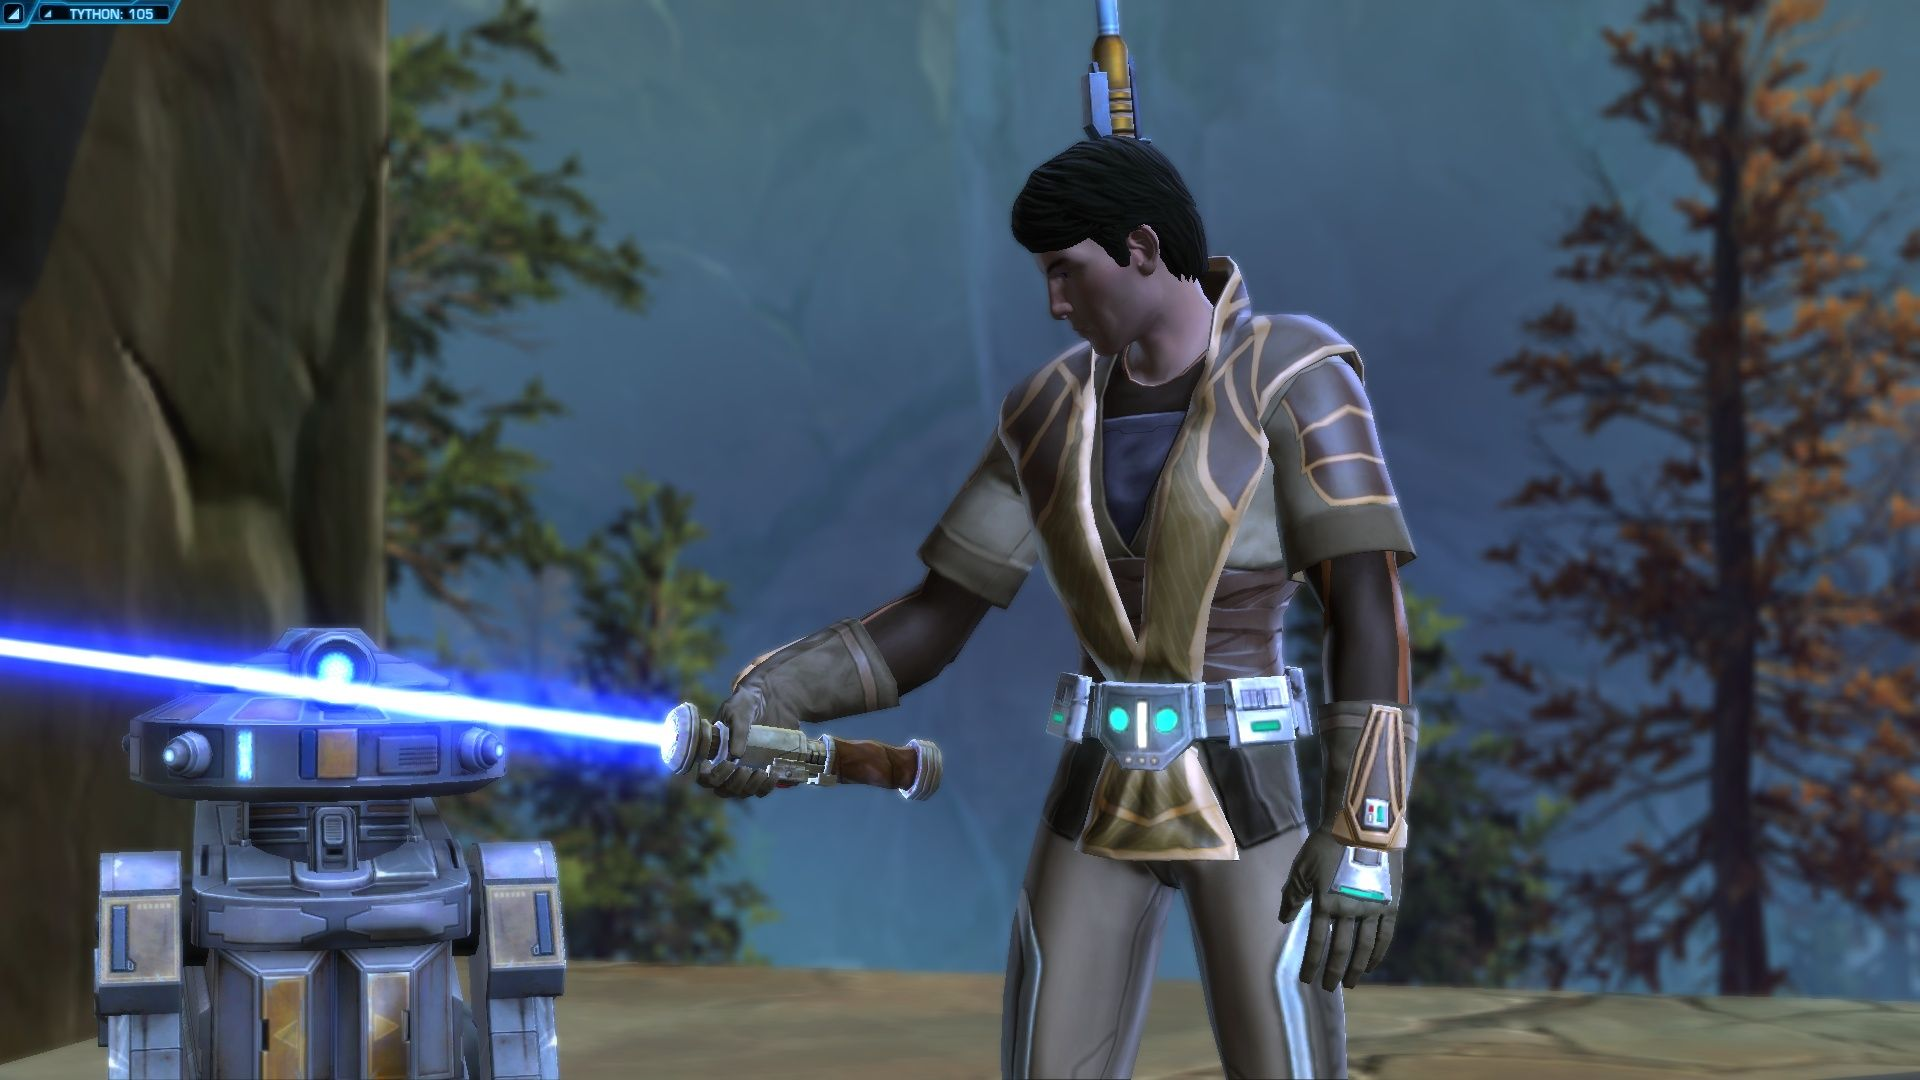 Star Wars Offers Fans a Platinum Light Saber for About $60 - Star Wars: The Old Republic News